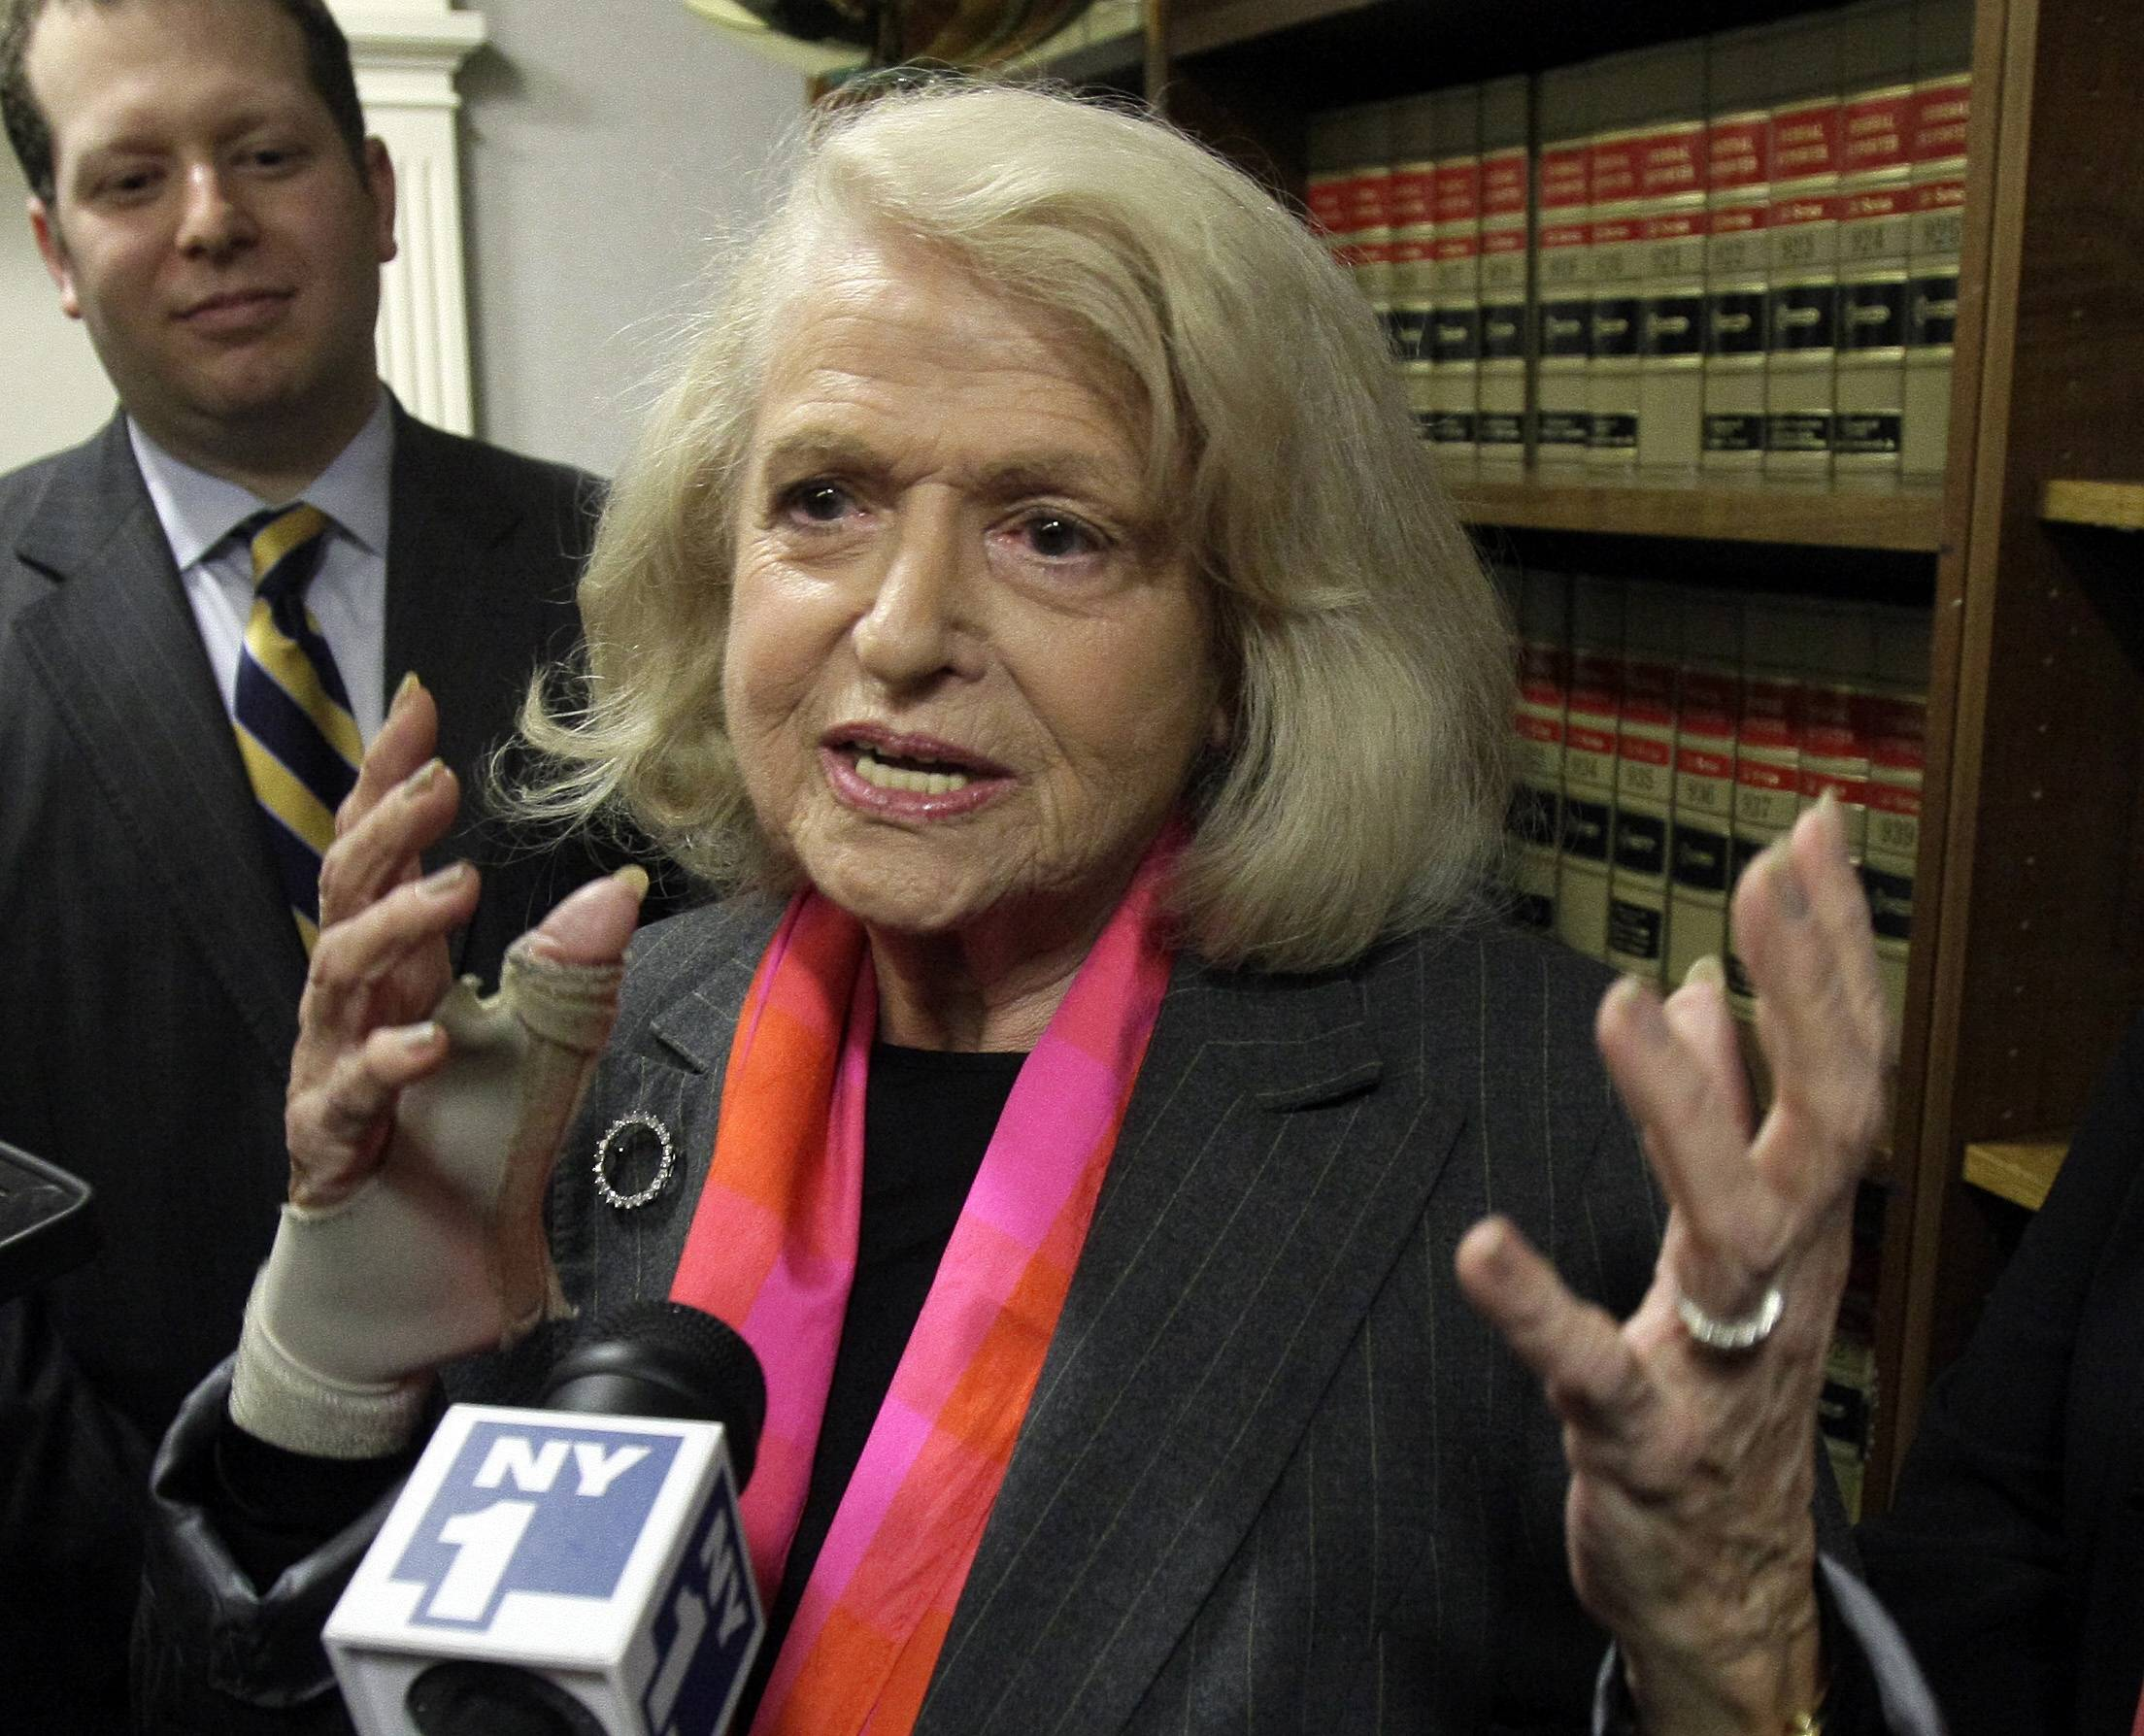 When it comes to things like estate taxes, the federal recognition of same-sex marriage will help legally married gay and lesbian couples. That was the issue in the Supreme Court decision in the case of Edith Windsor, who had to pay estate taxes after her lesbian spouse died.